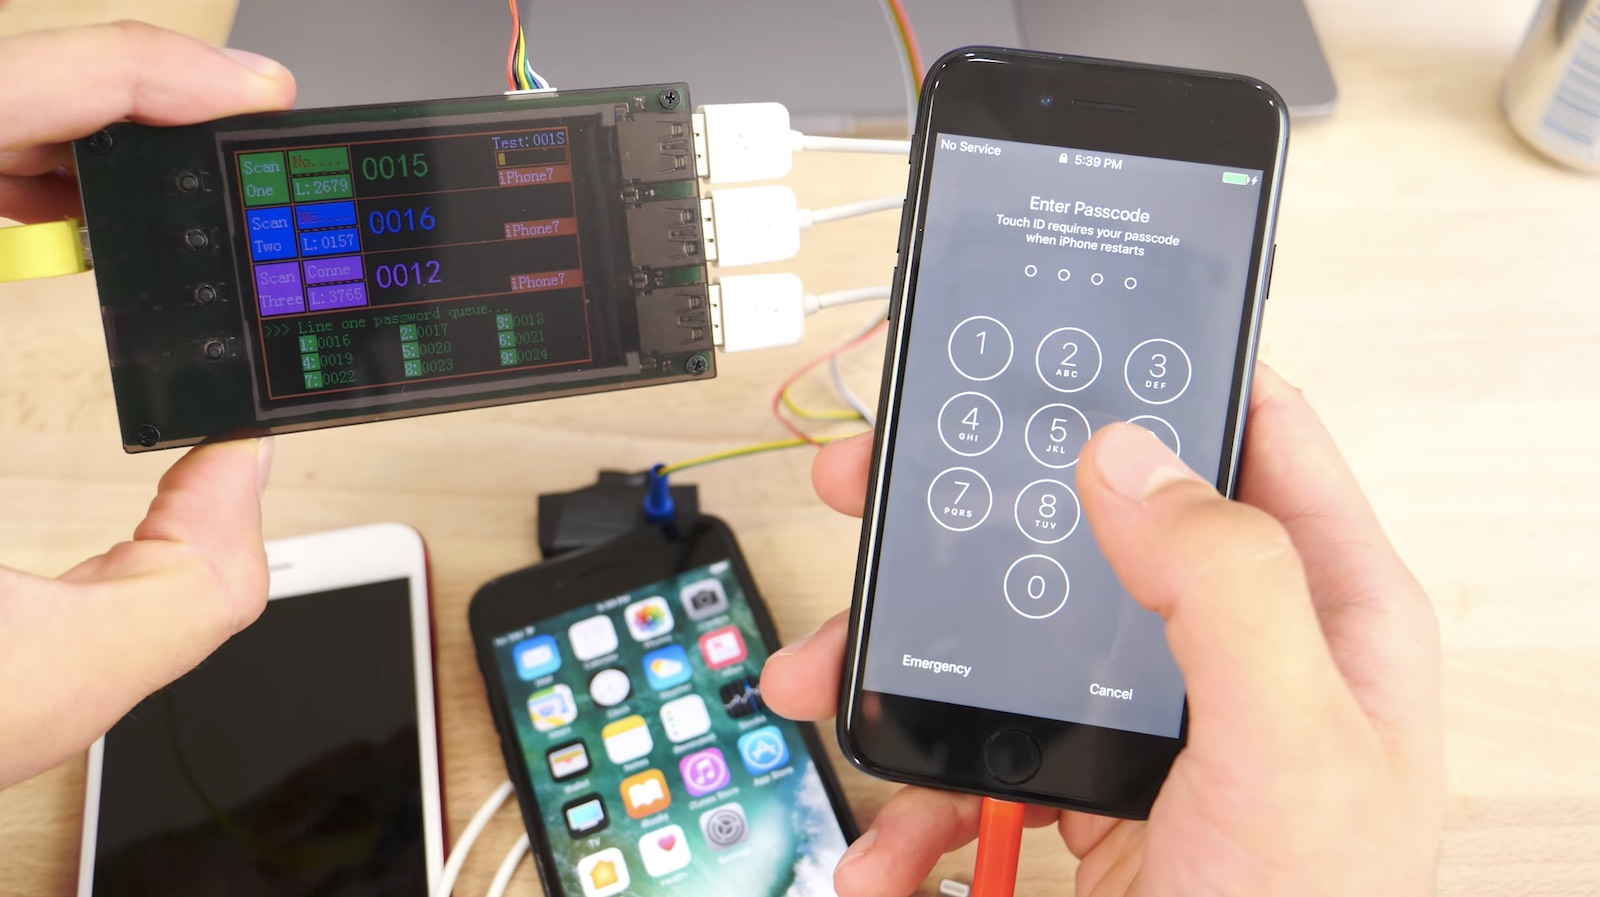 iPhone 5s Touch ID hack in detail